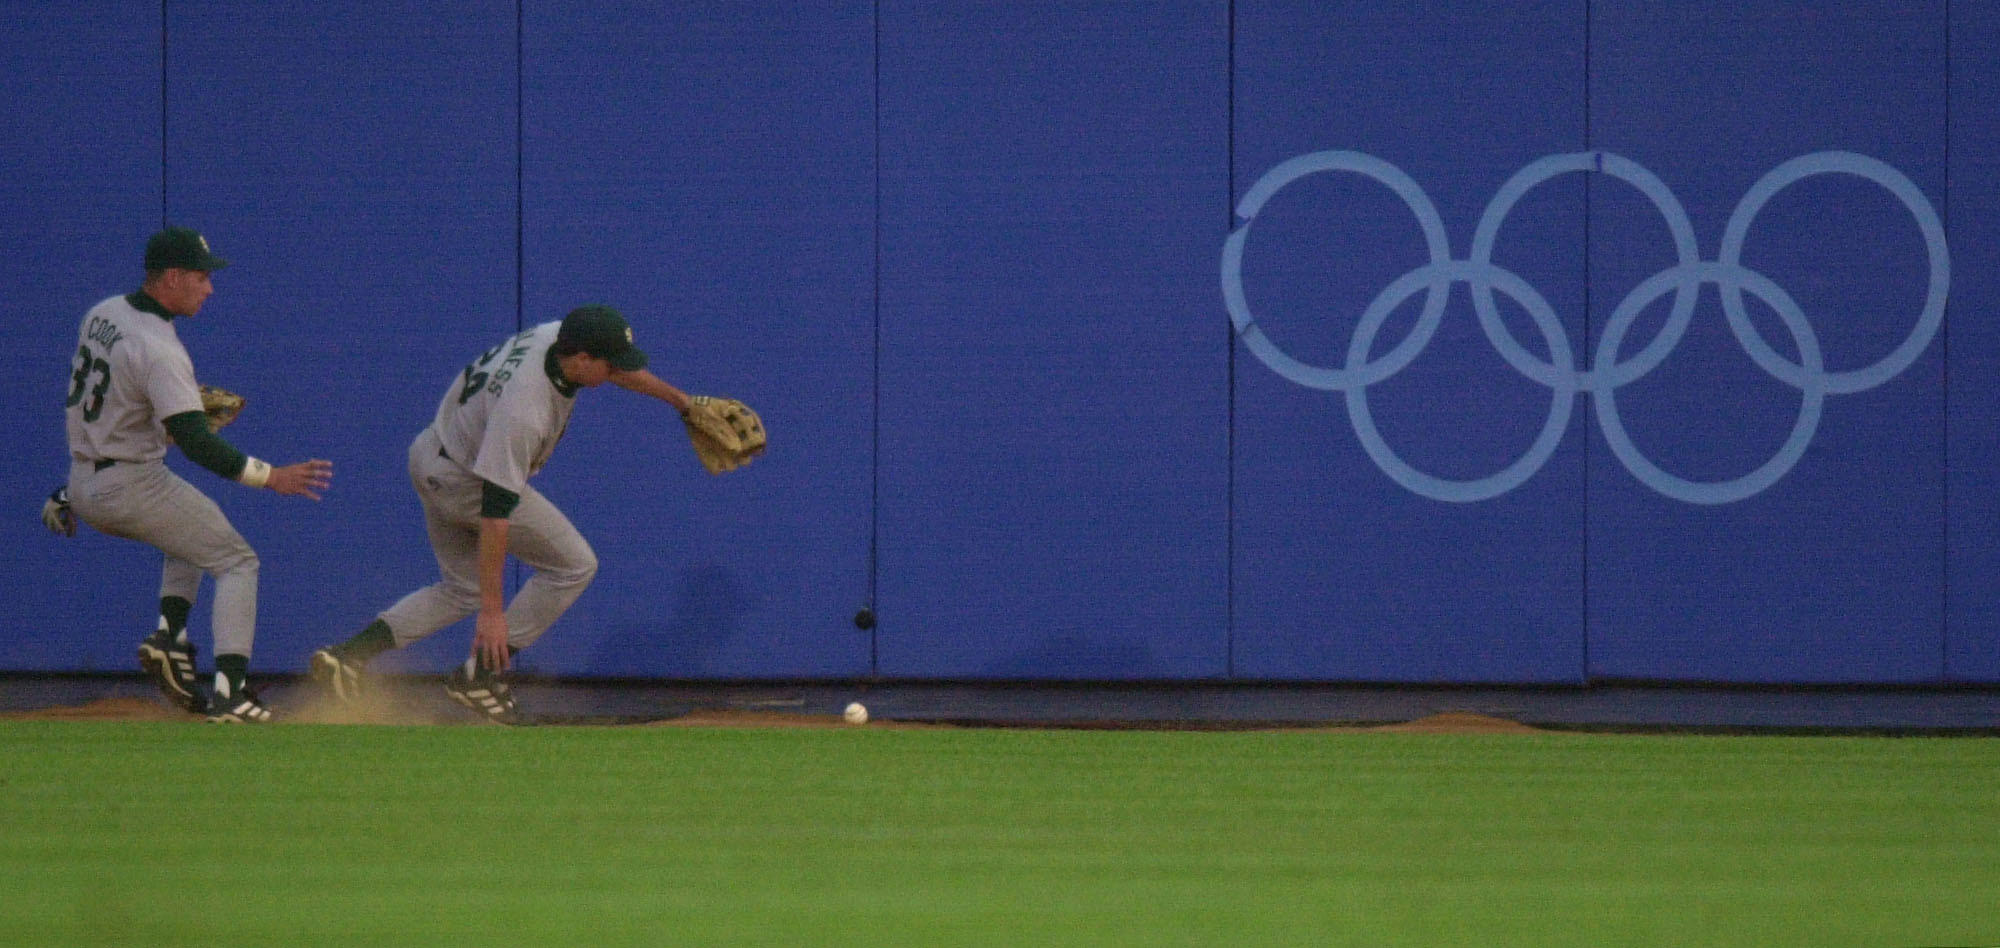 South African outfielders chase a hiy by Brad Wilkerson of the U.S. at the 2000 Olympics.